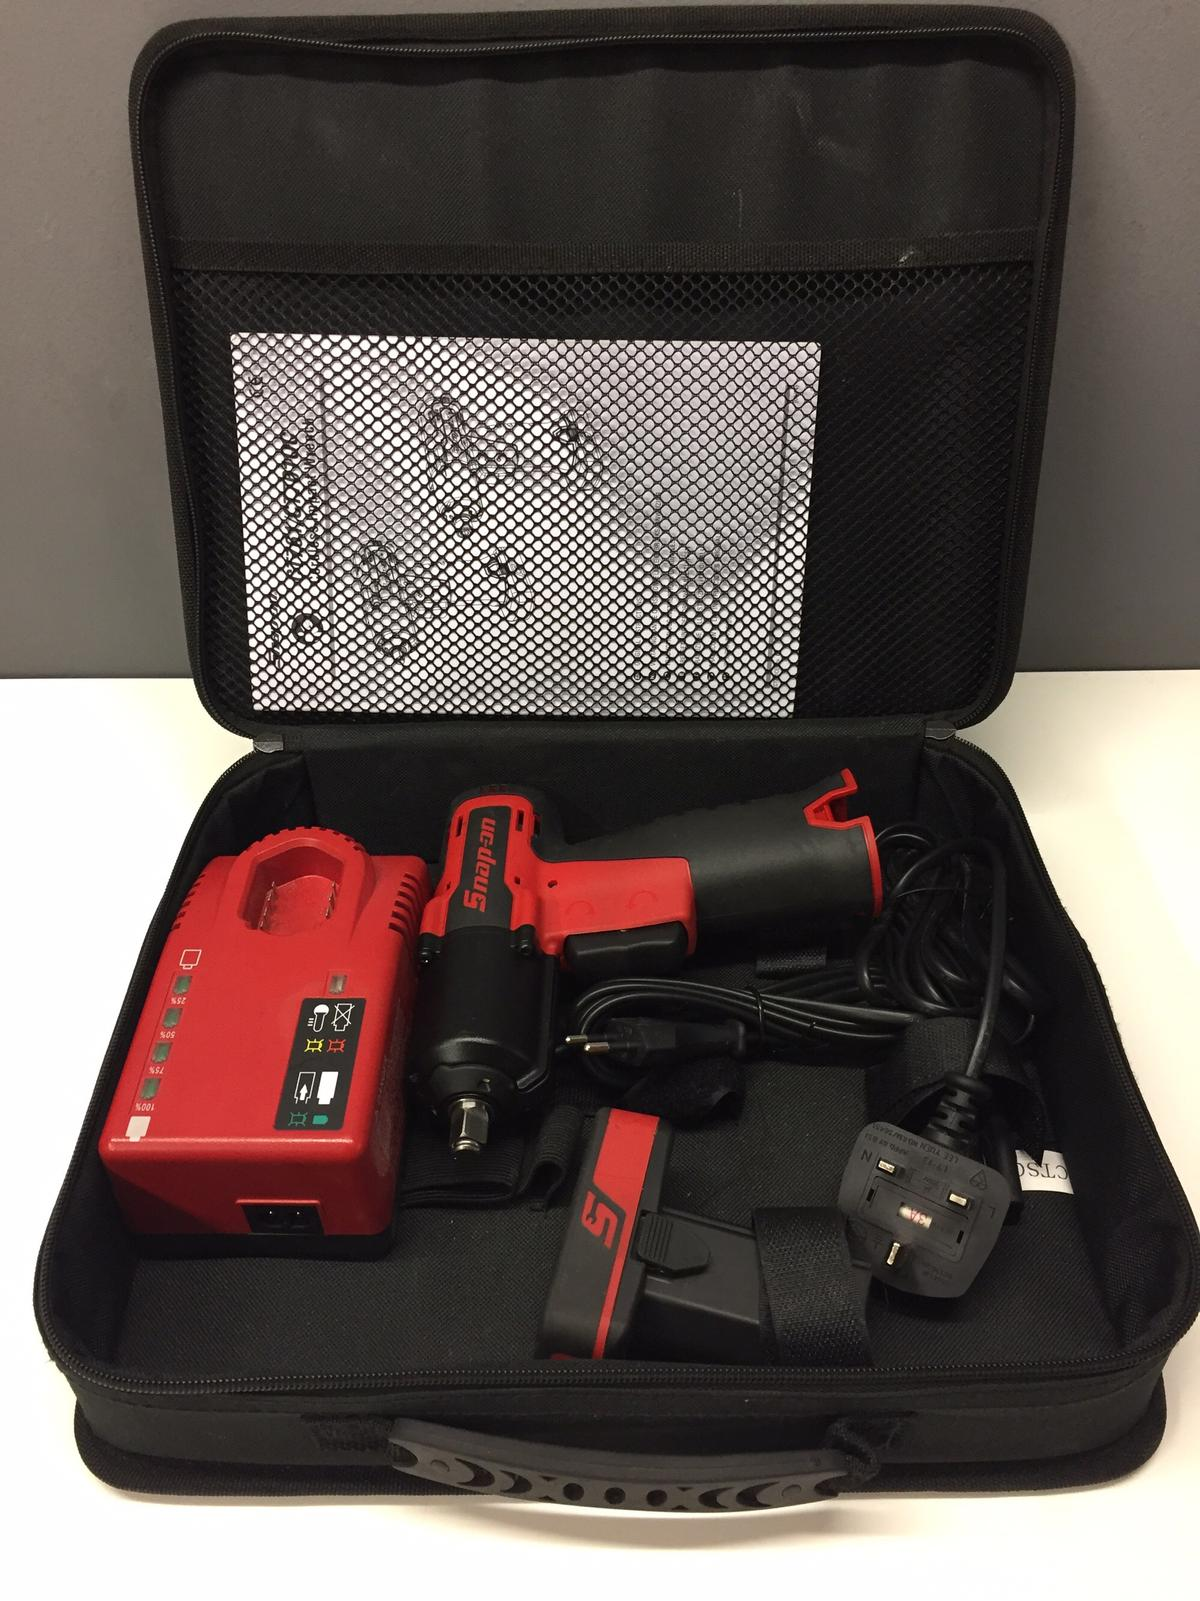 Snap On 14 4v 3/8 cordless impact Wrench kit